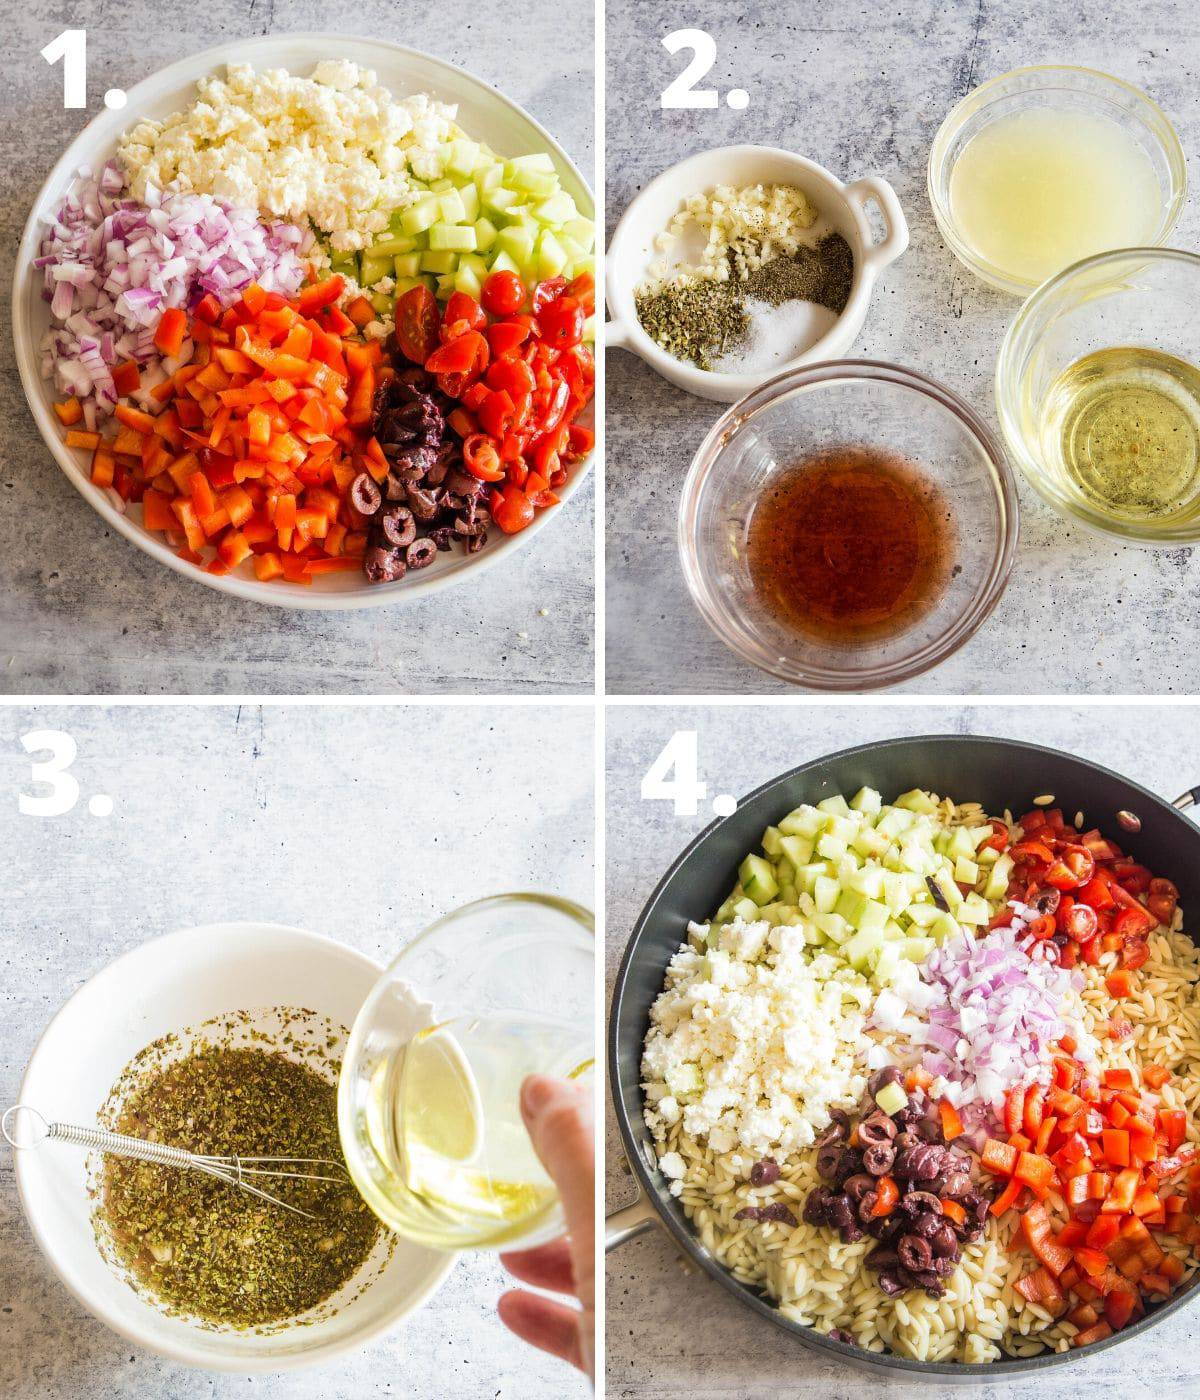 Step by step instructions for making orzo salad